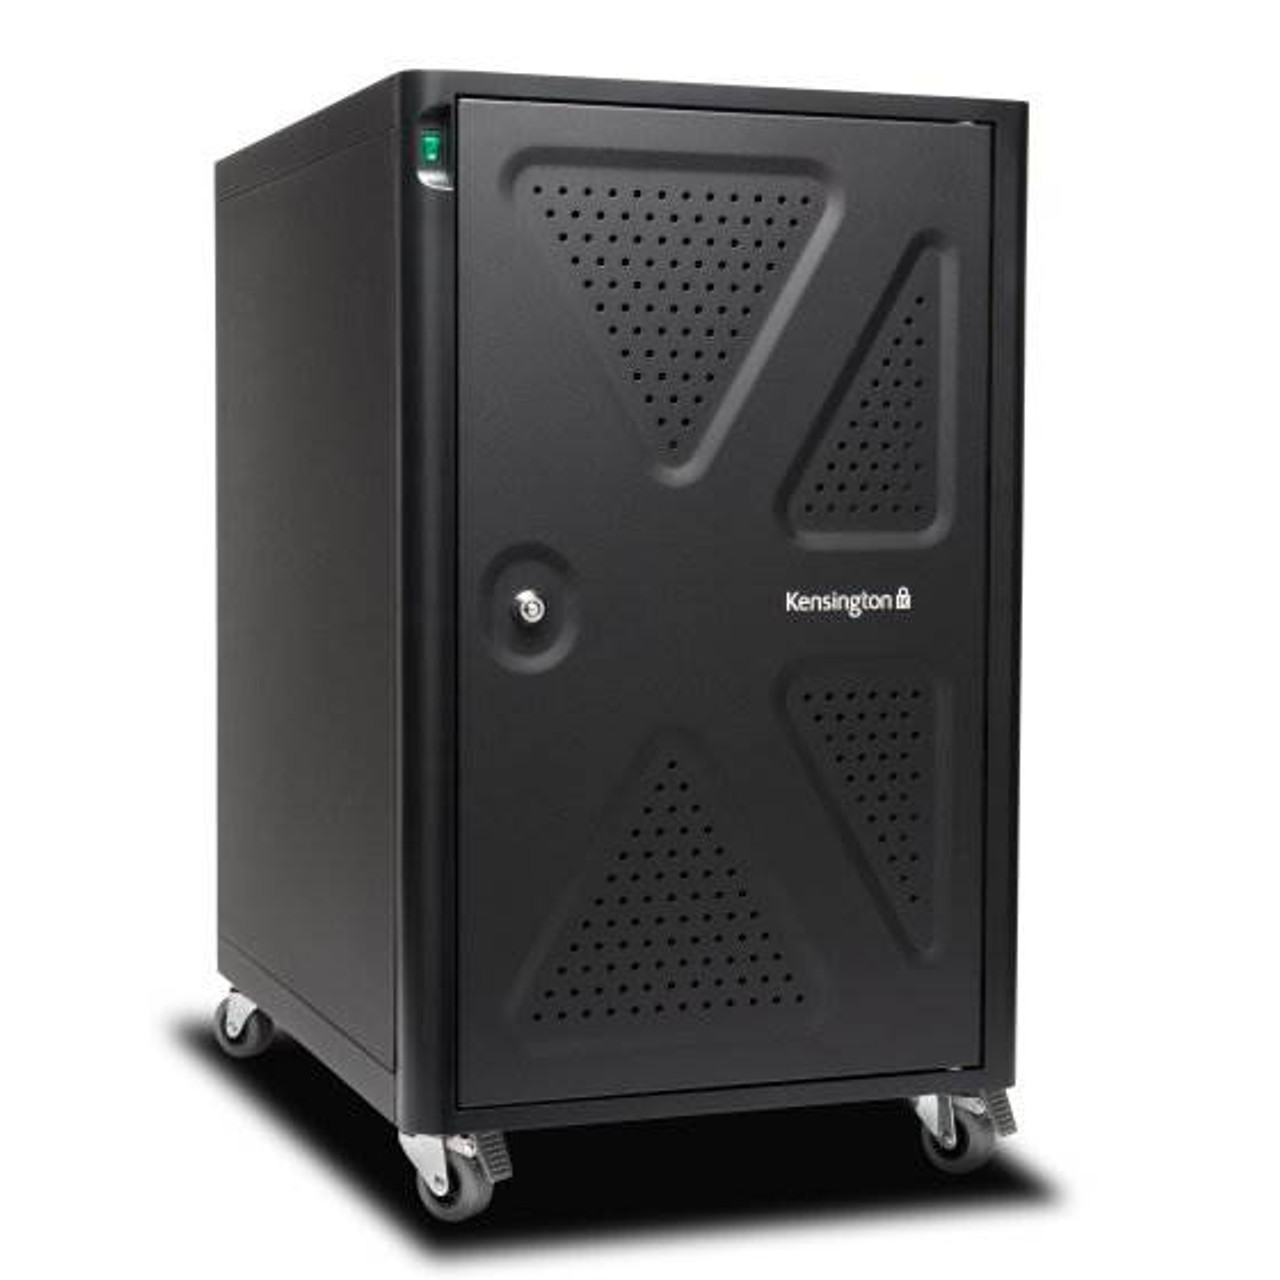 Image for Kensington AC12 12 Bay Charging Cabinet for Chromebooks & Tablets CX Computer Superstore